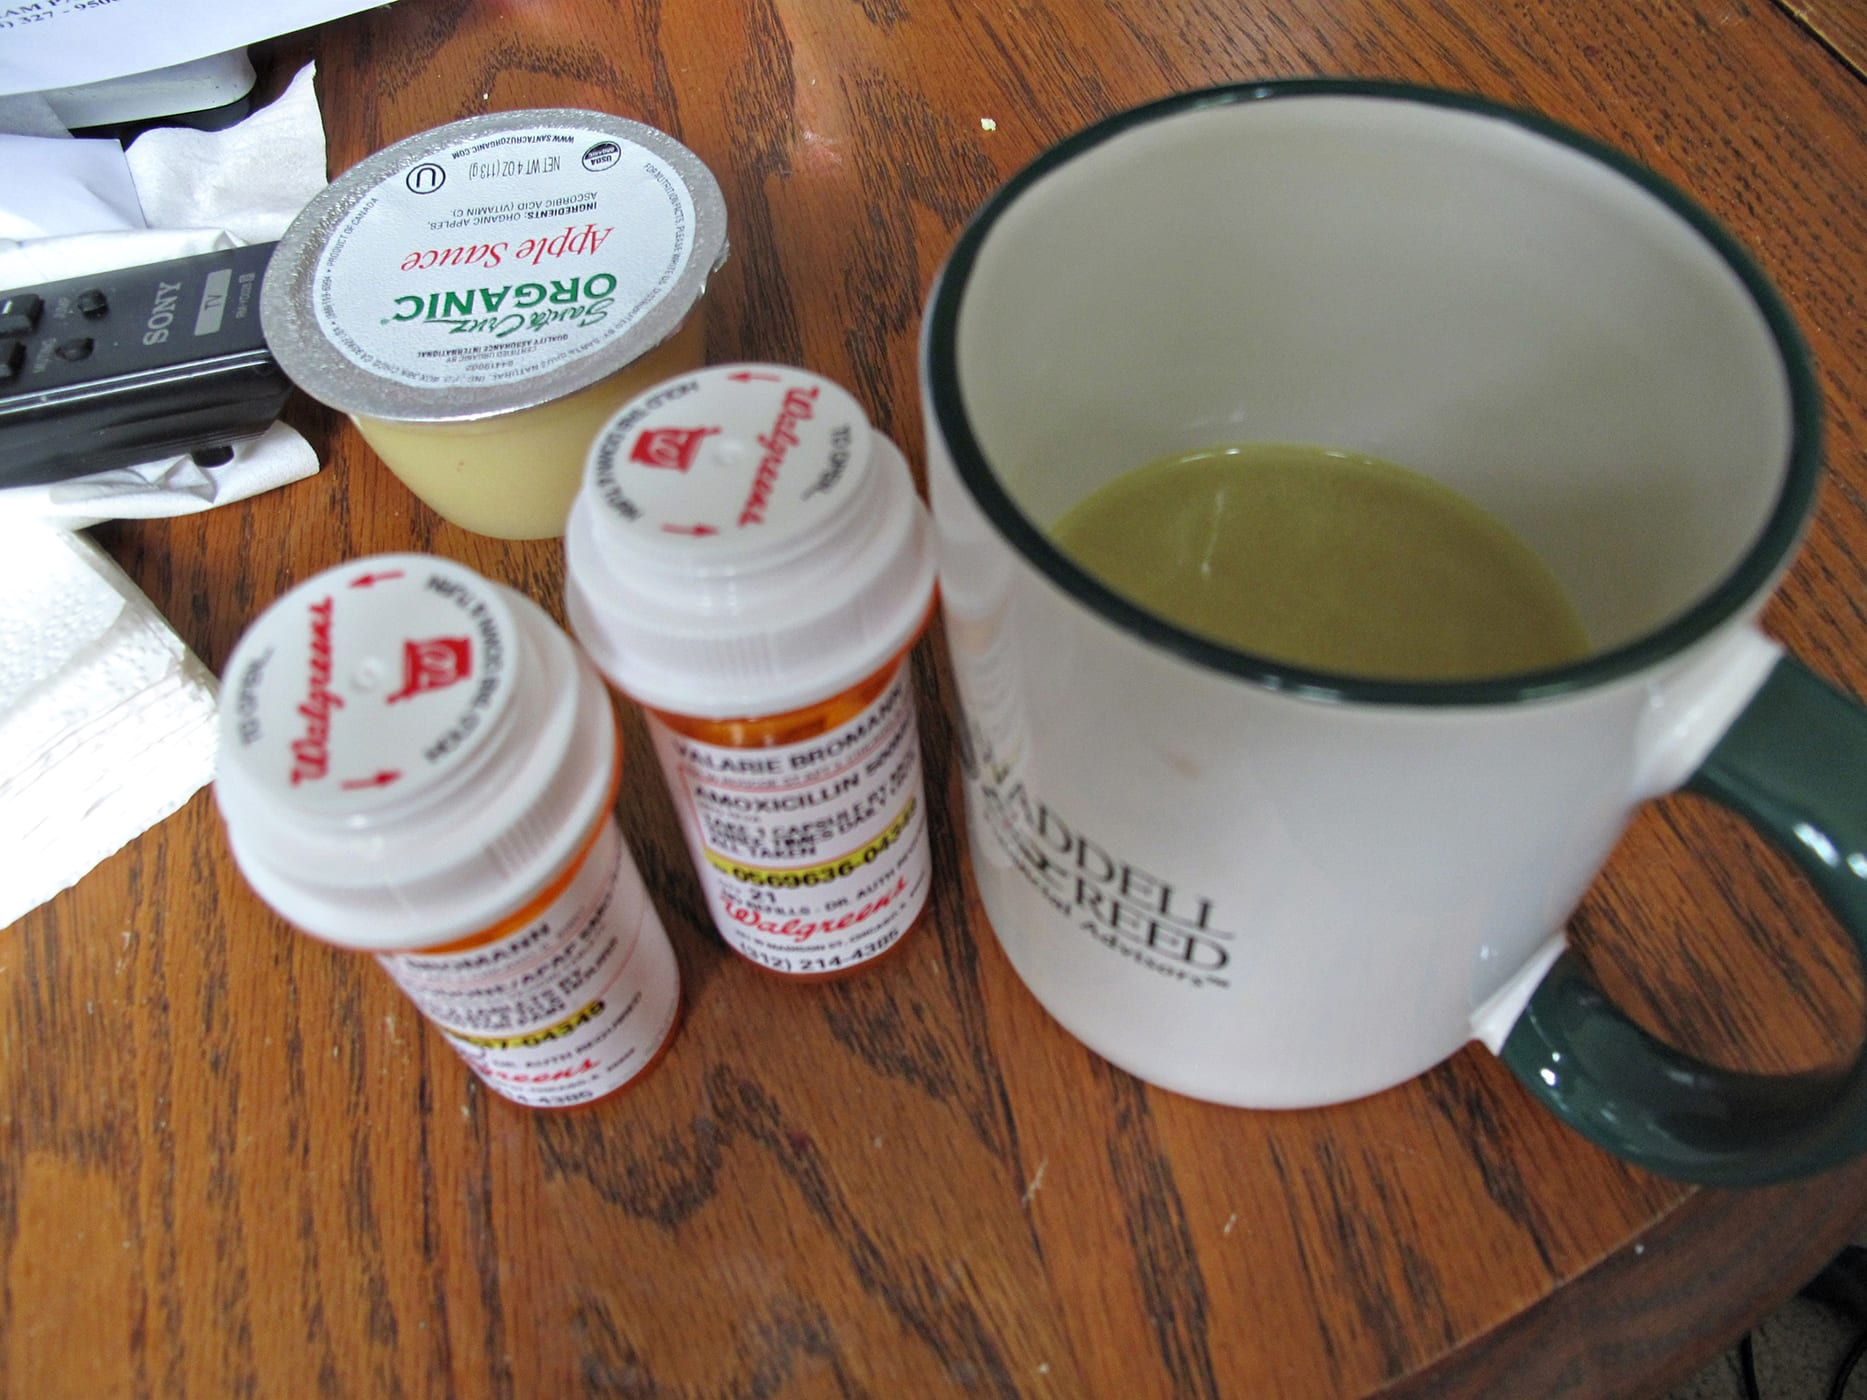 Wisdom tooth diet - chicken broth and drugs.